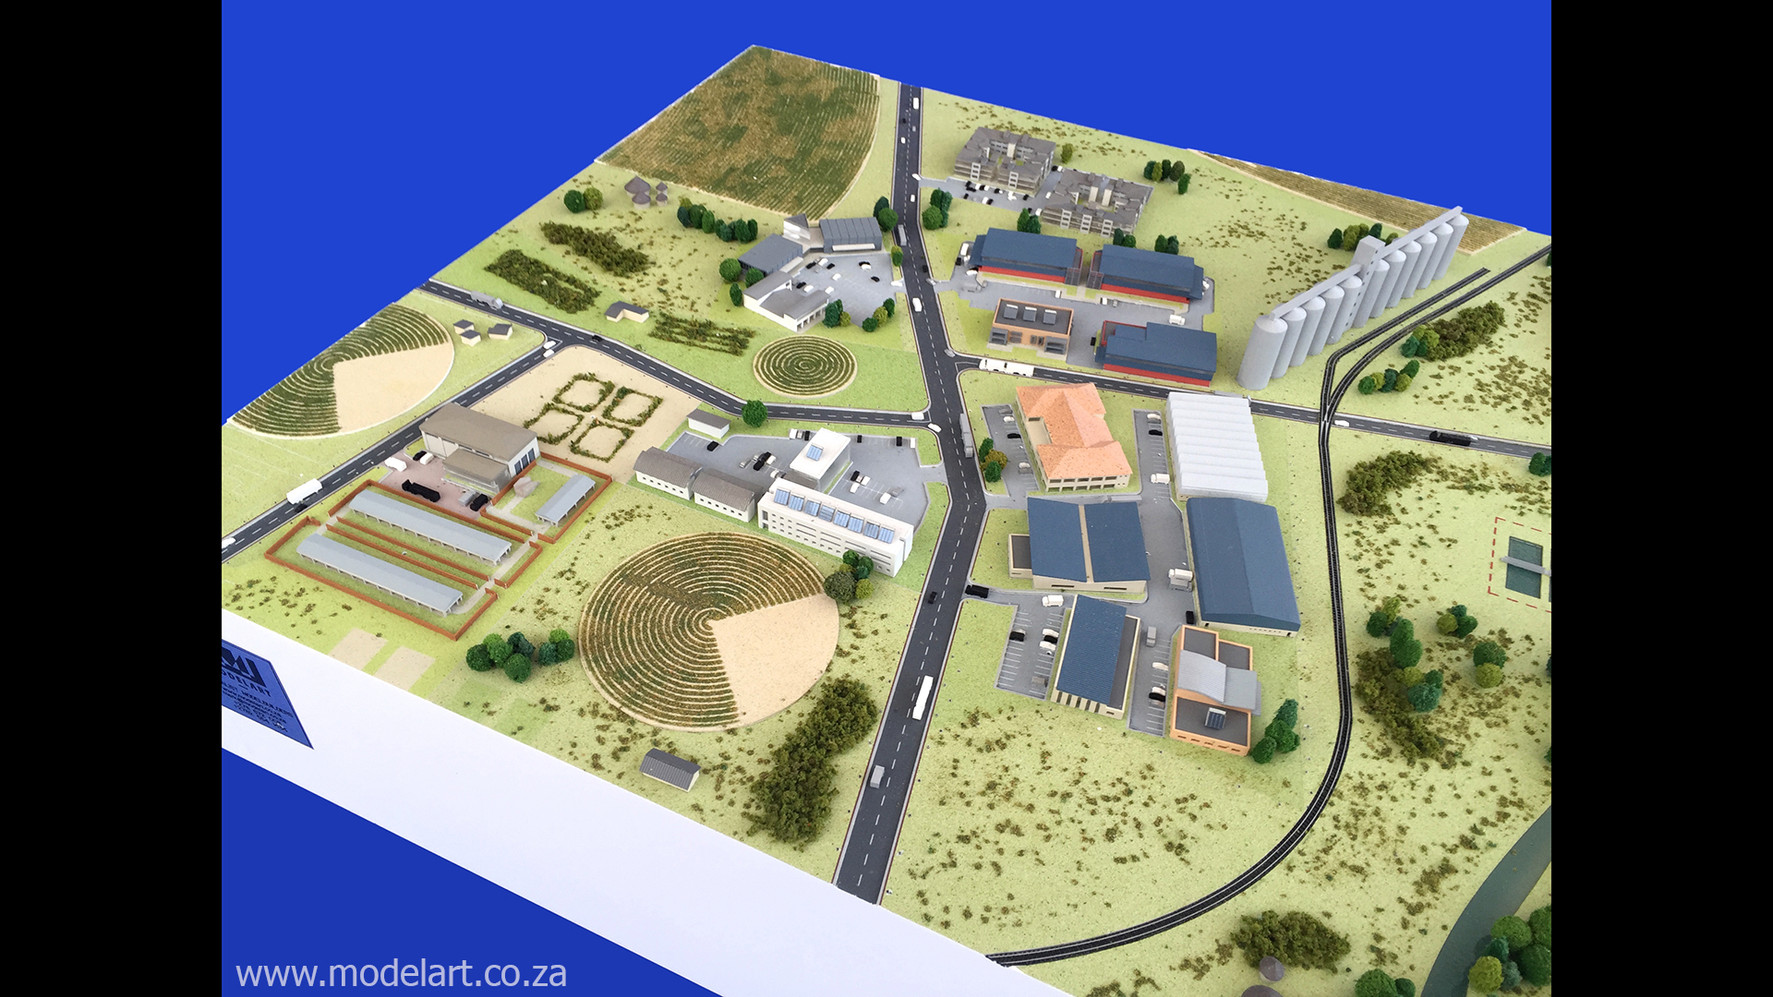 Architectural-Scale-Model-Industrial-Agri Park-5